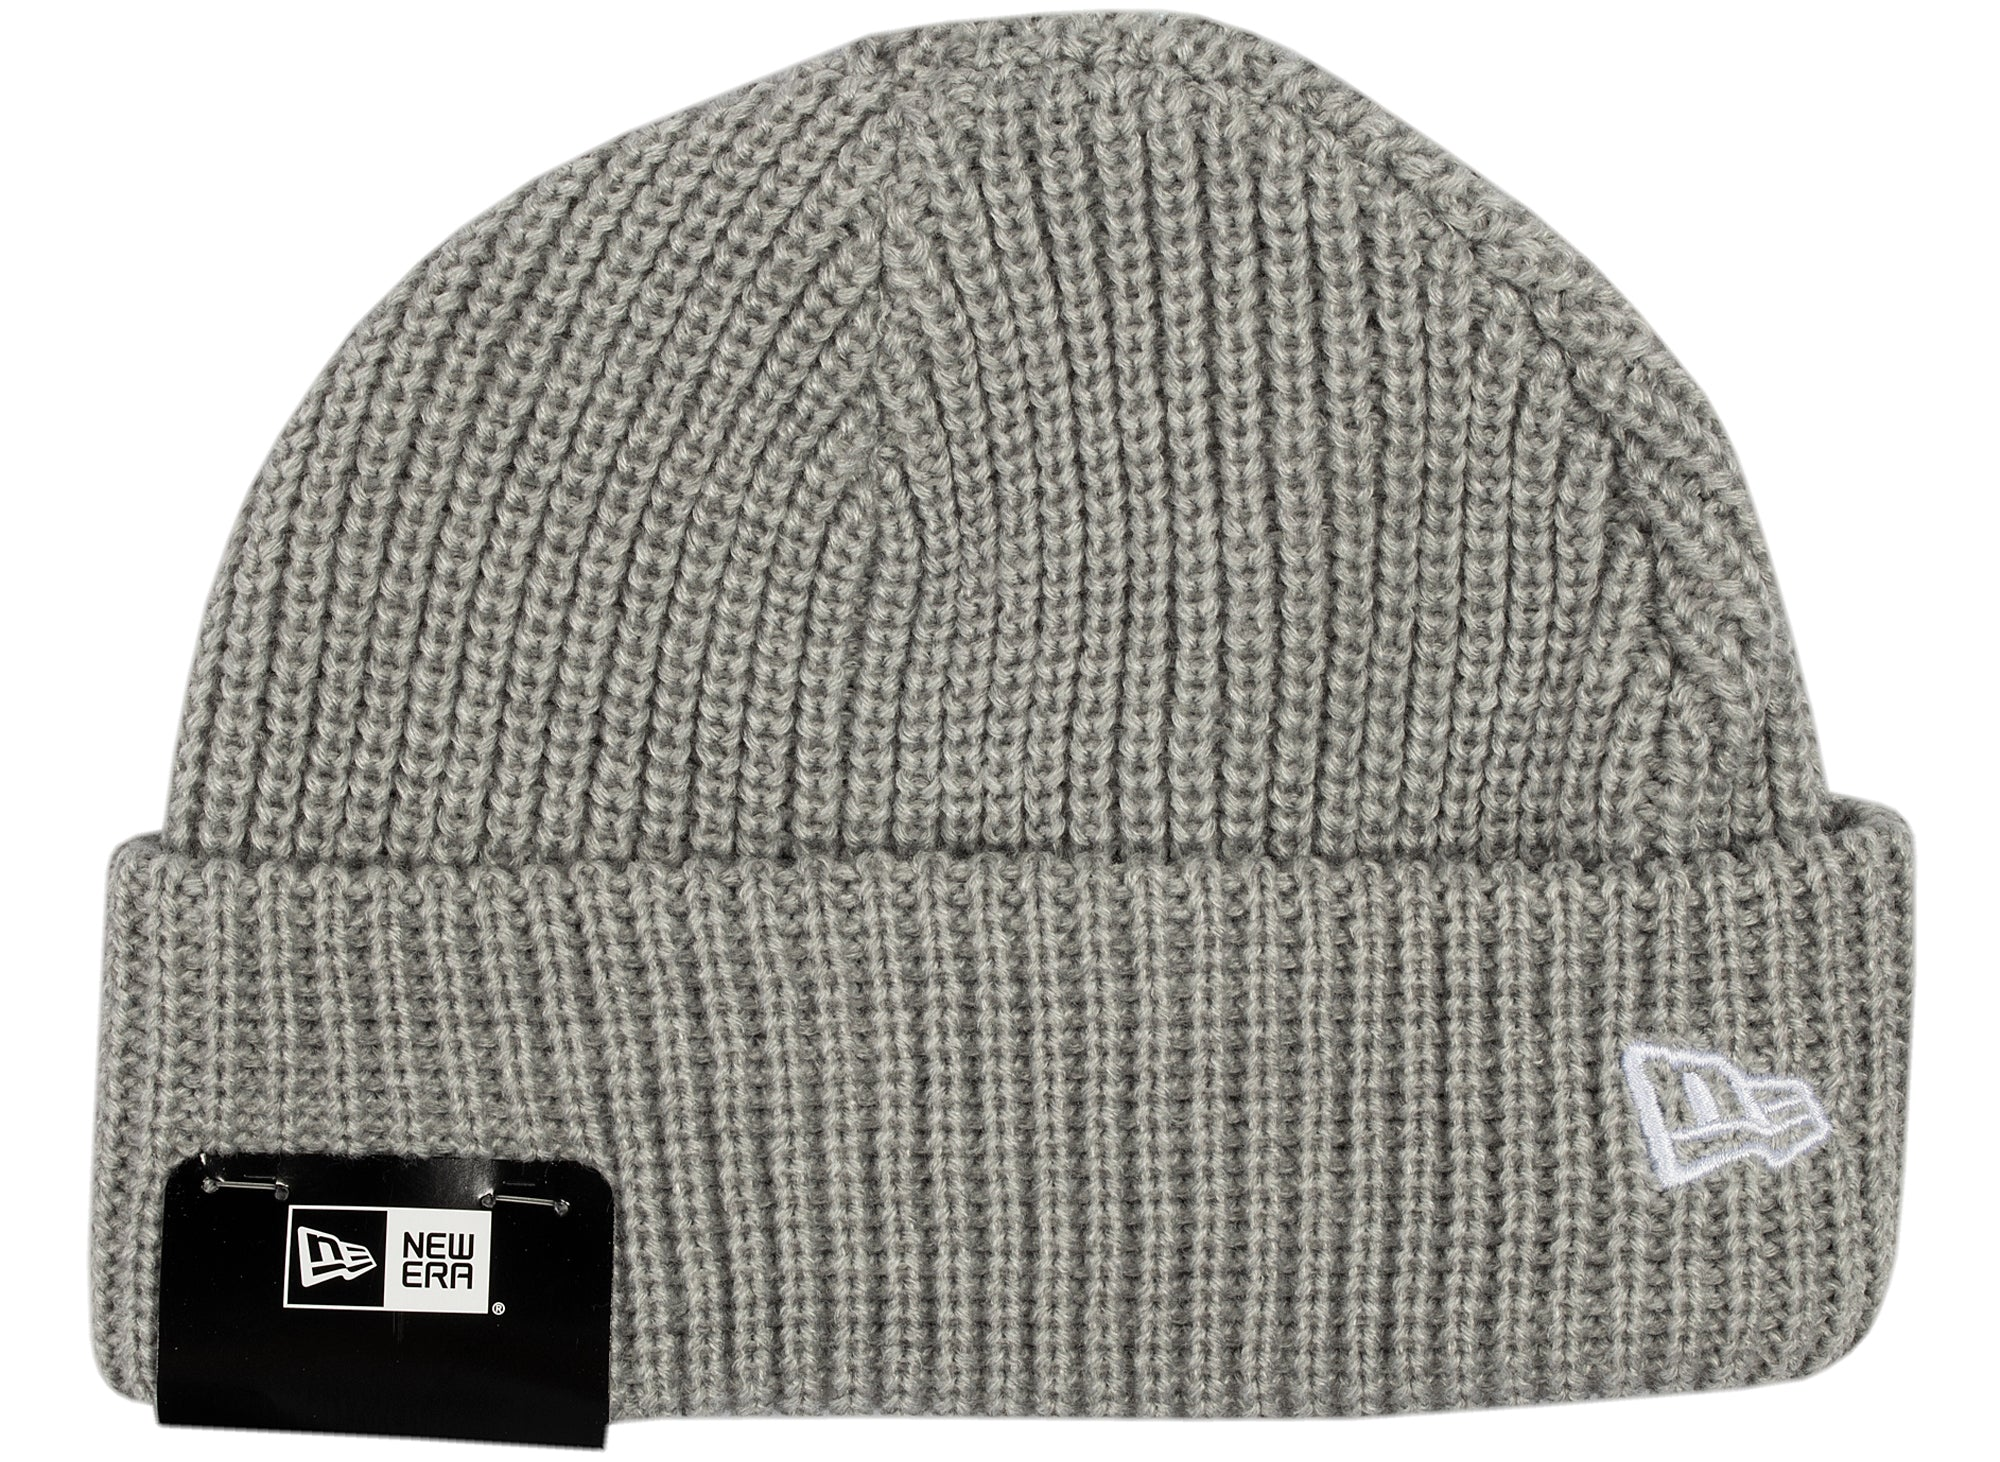 New Era Knit Skully Cap in Grey xld